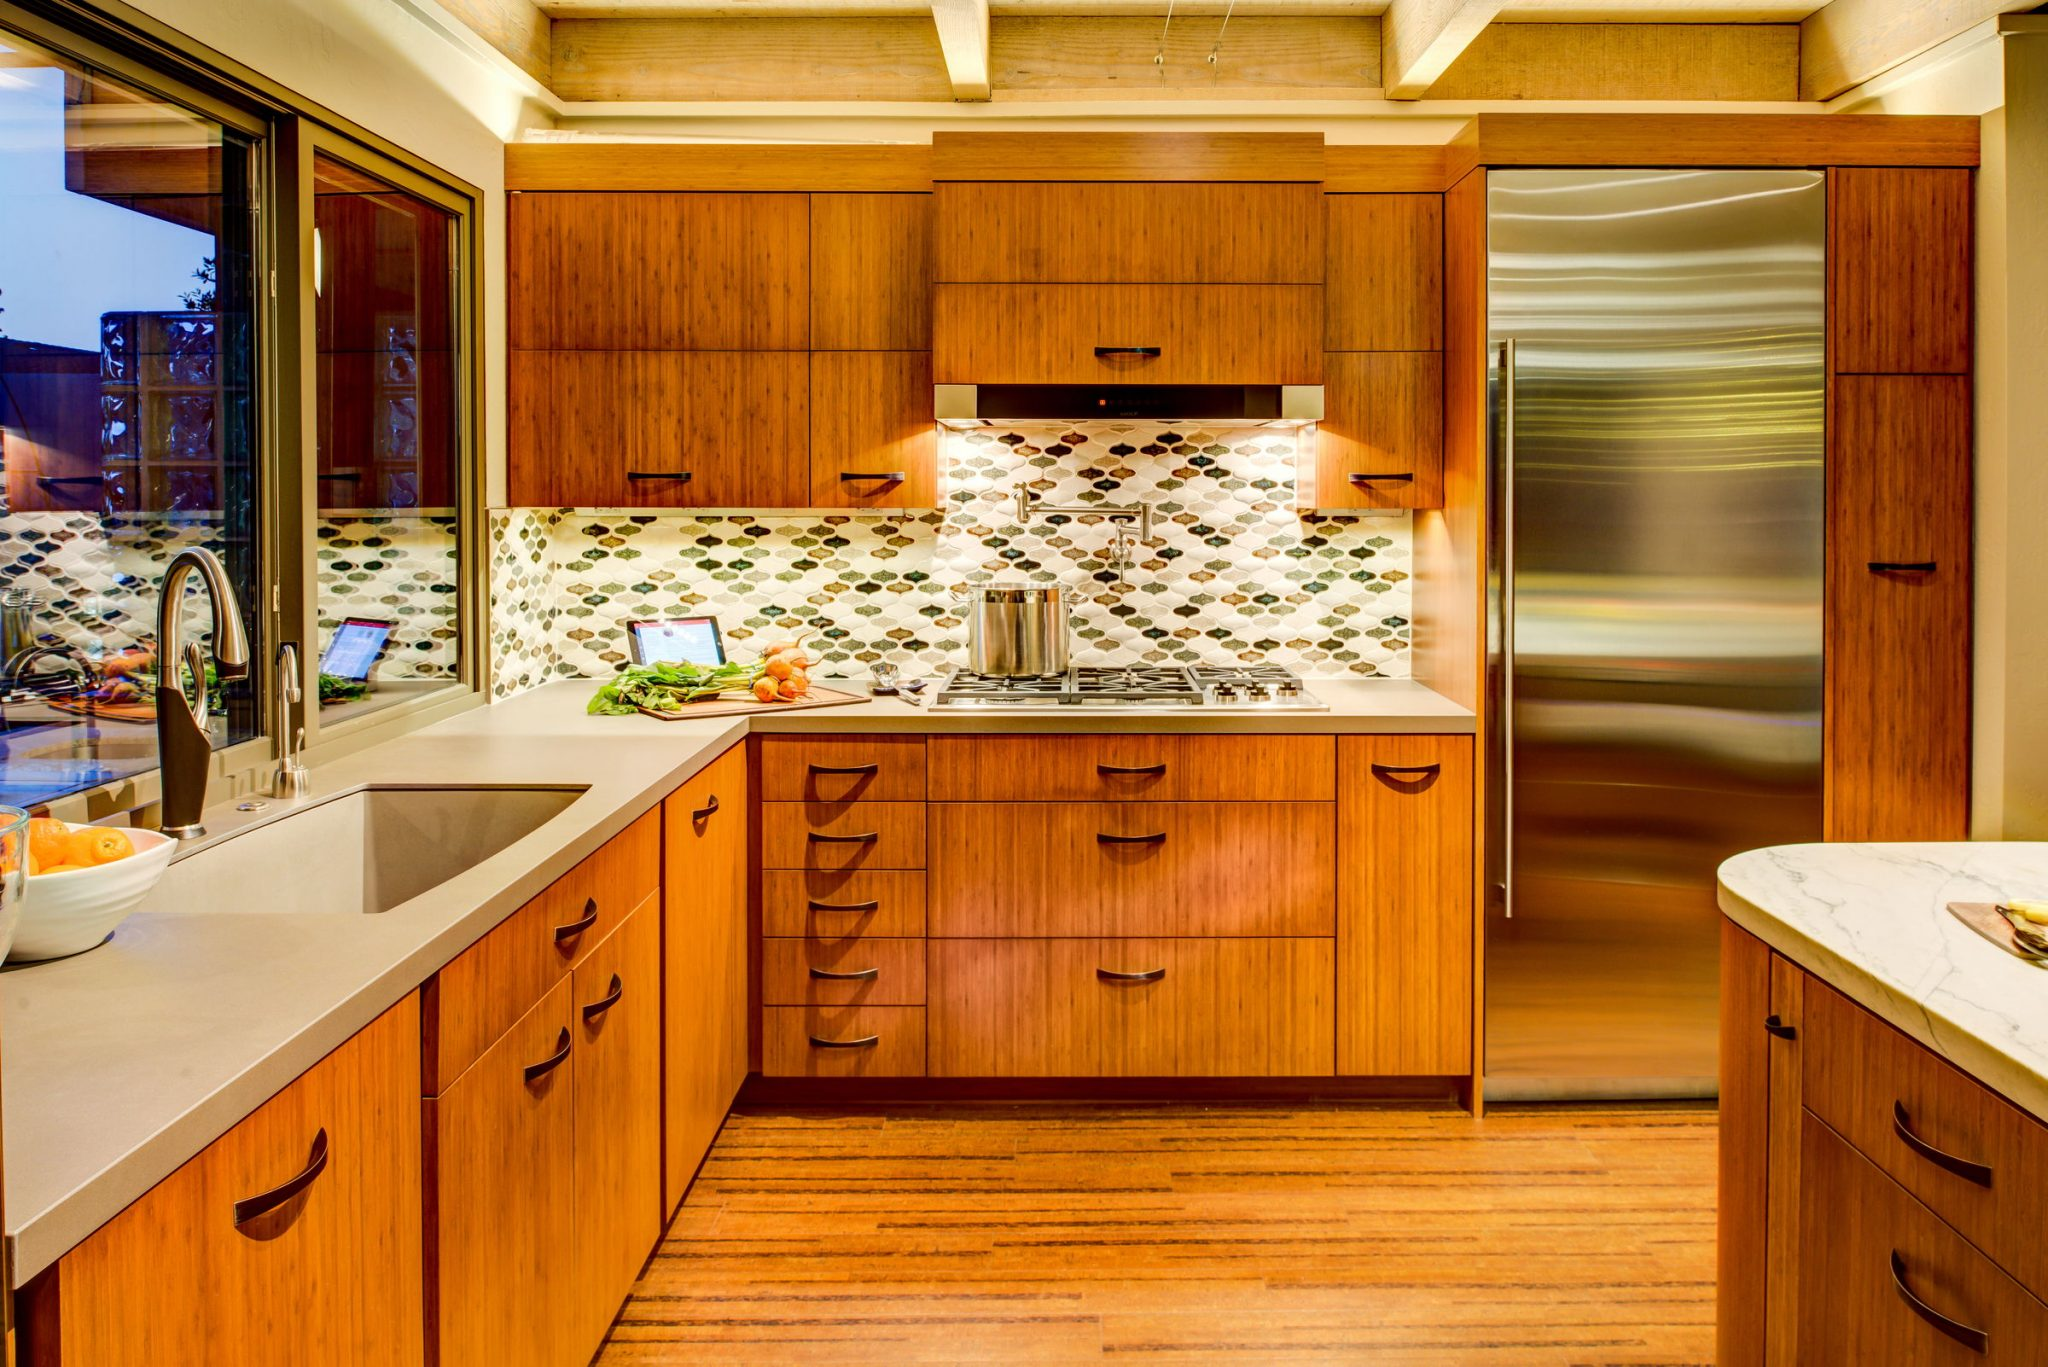 Eclectic Kitchens: Eclectic Residential Remodels